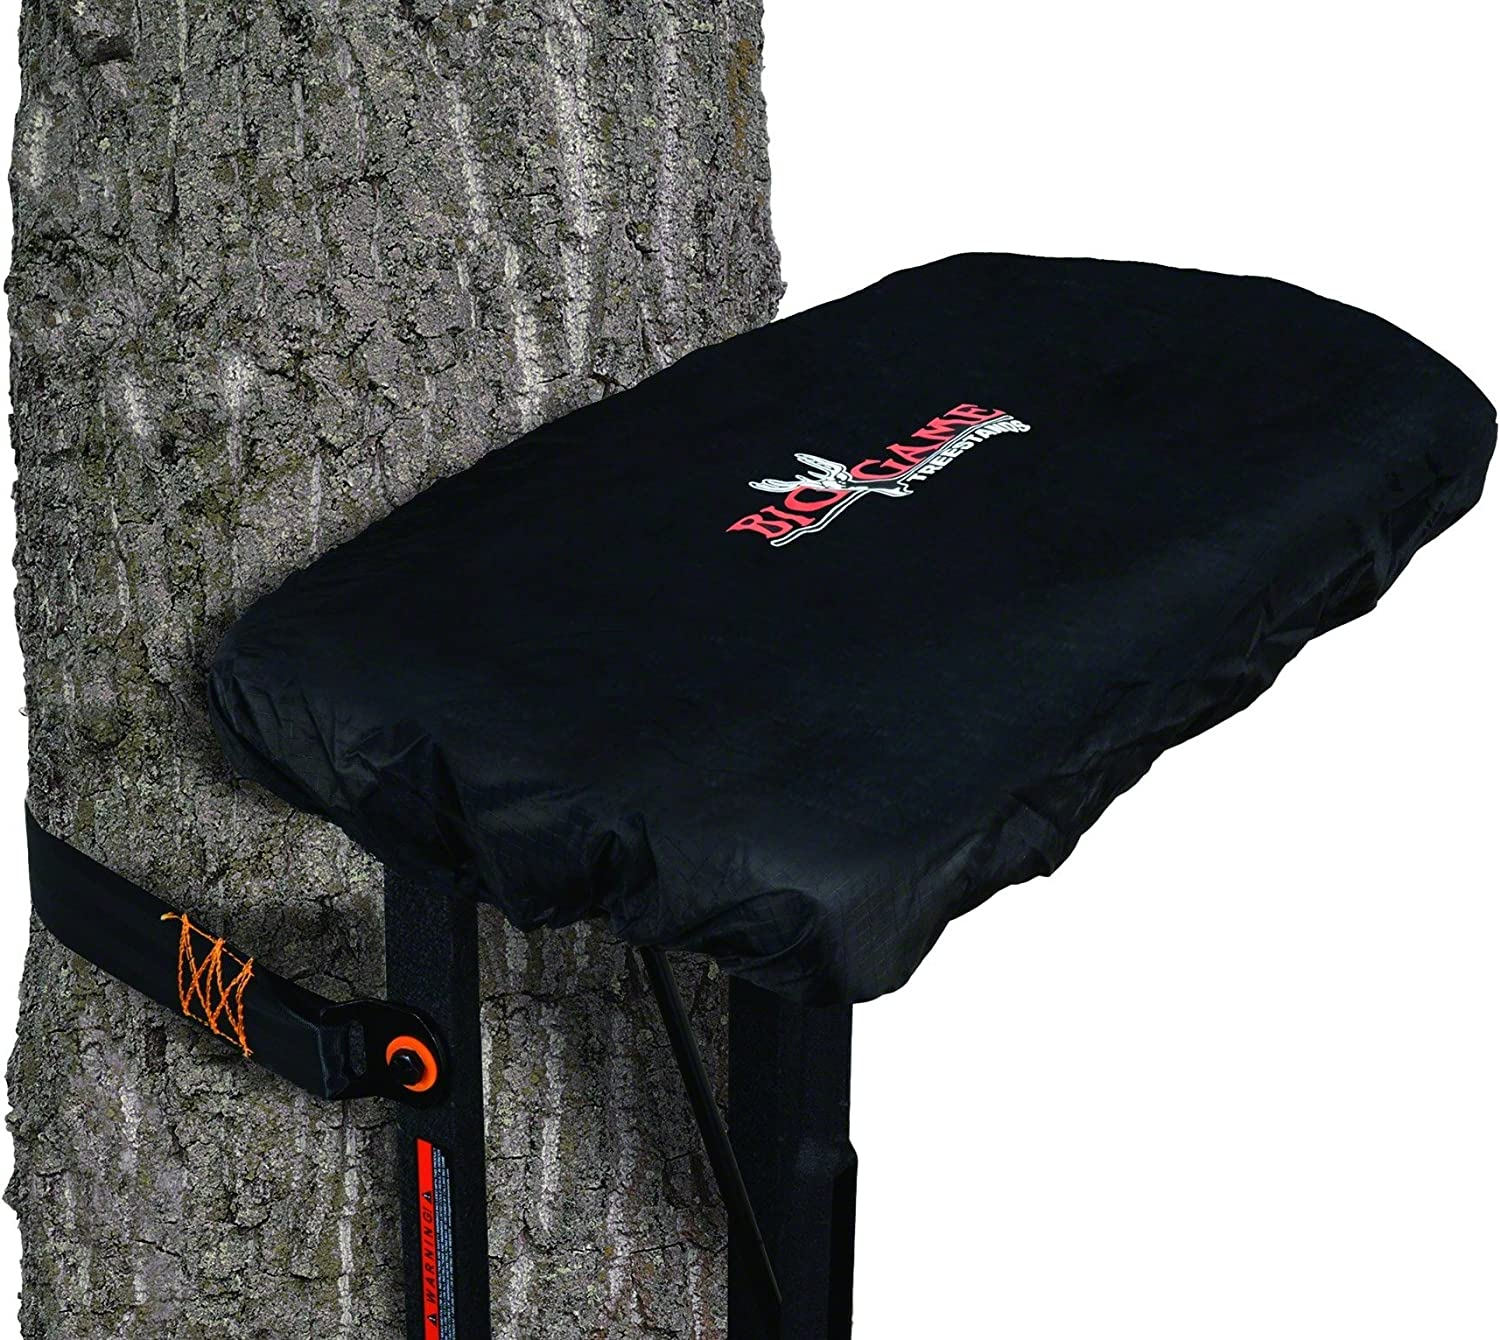 Muddy Treestands Waterproof Seat Cover